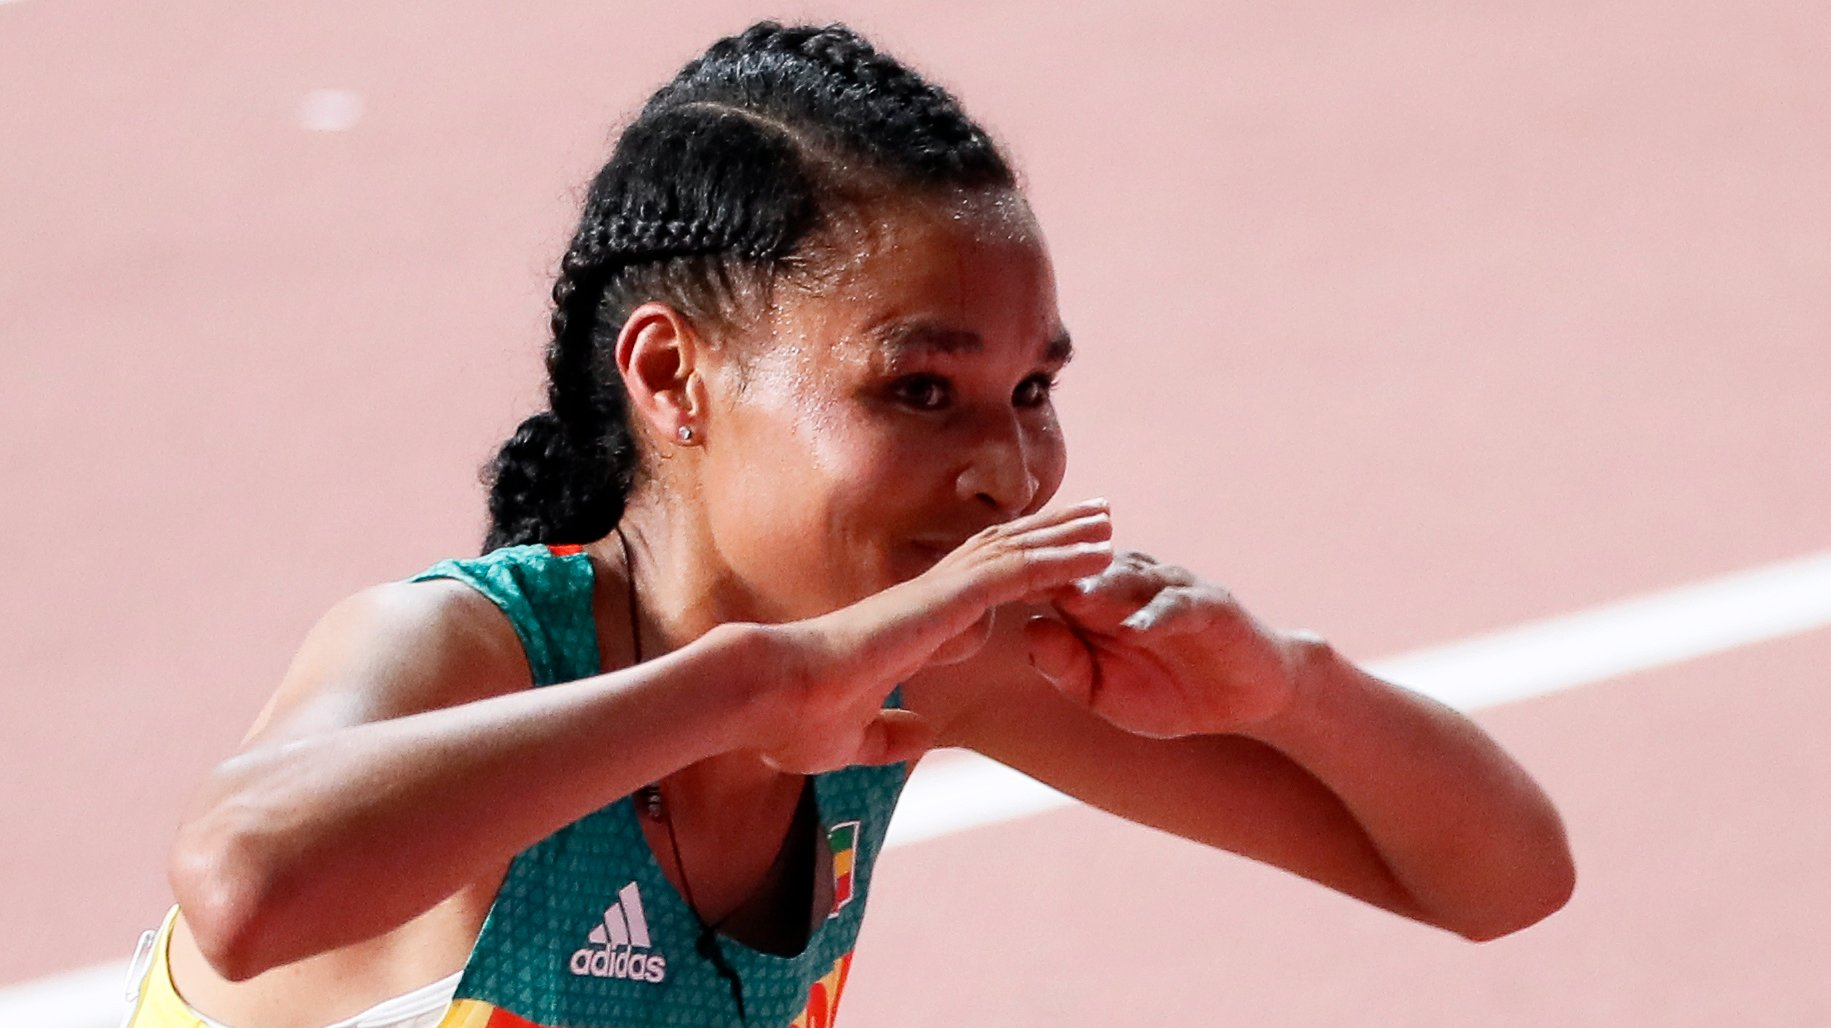 epa07878172 Letesenbet Gidey of Ethiopia celebrates after taking the second place in the women's 10,000m final during the IAAF World Athletics Championships 2019 at the Khalifa Stadium in Doha, Qatar, 28 September 2019. EPA/ROBERT GHEMENT